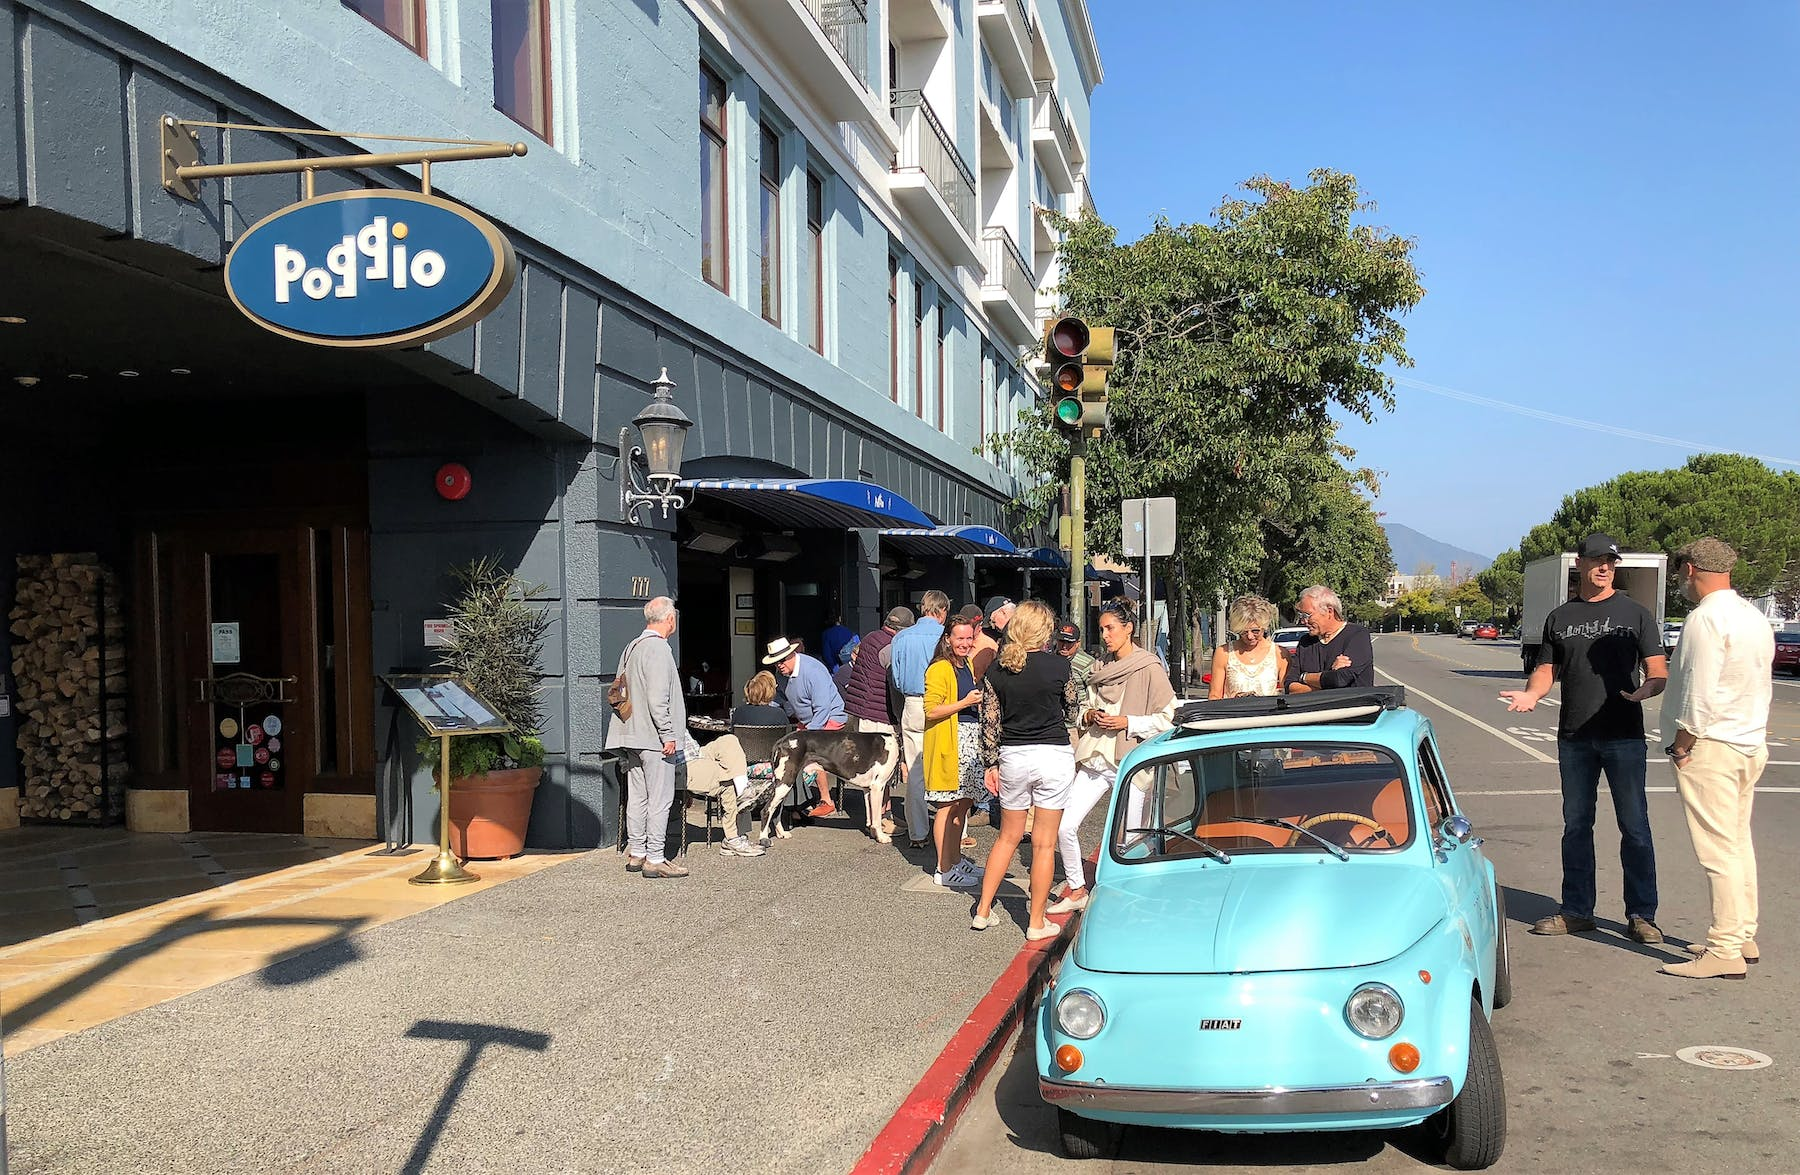 a car parked outside a building, and people on the sidewalk.